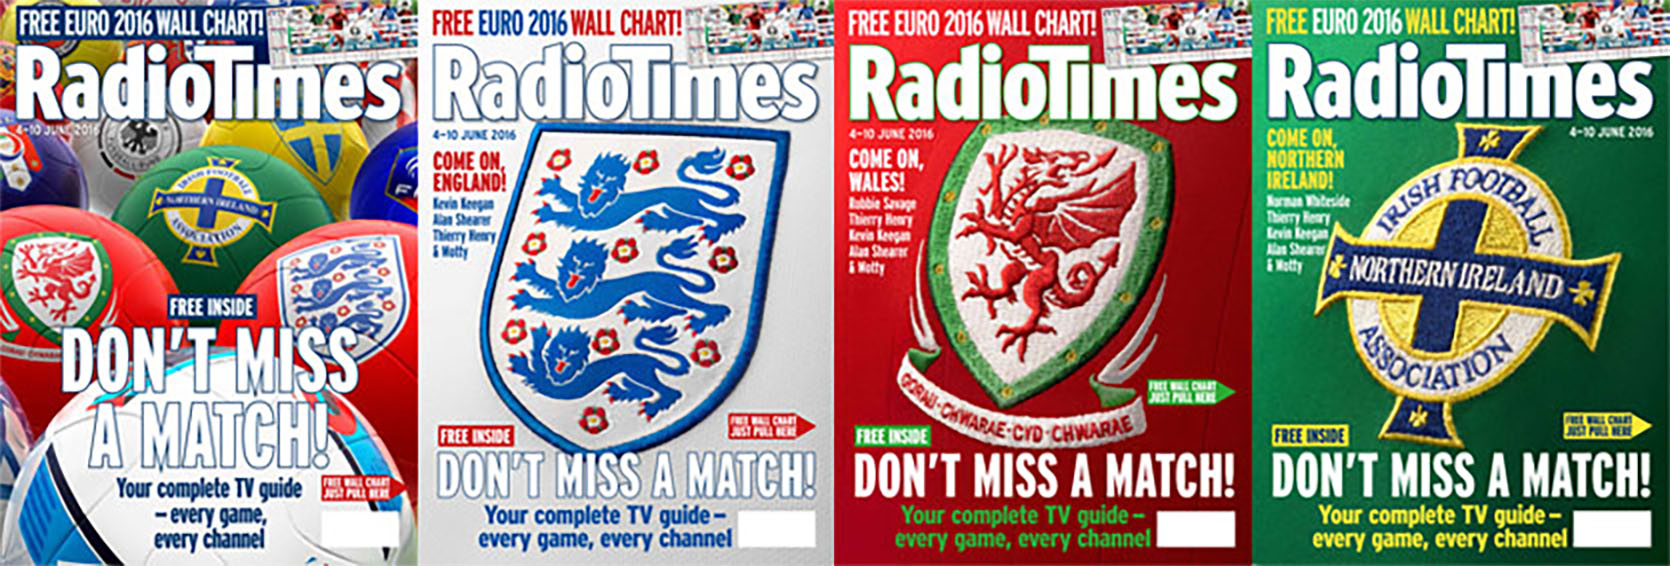 Radio Times Euro 2016 covers